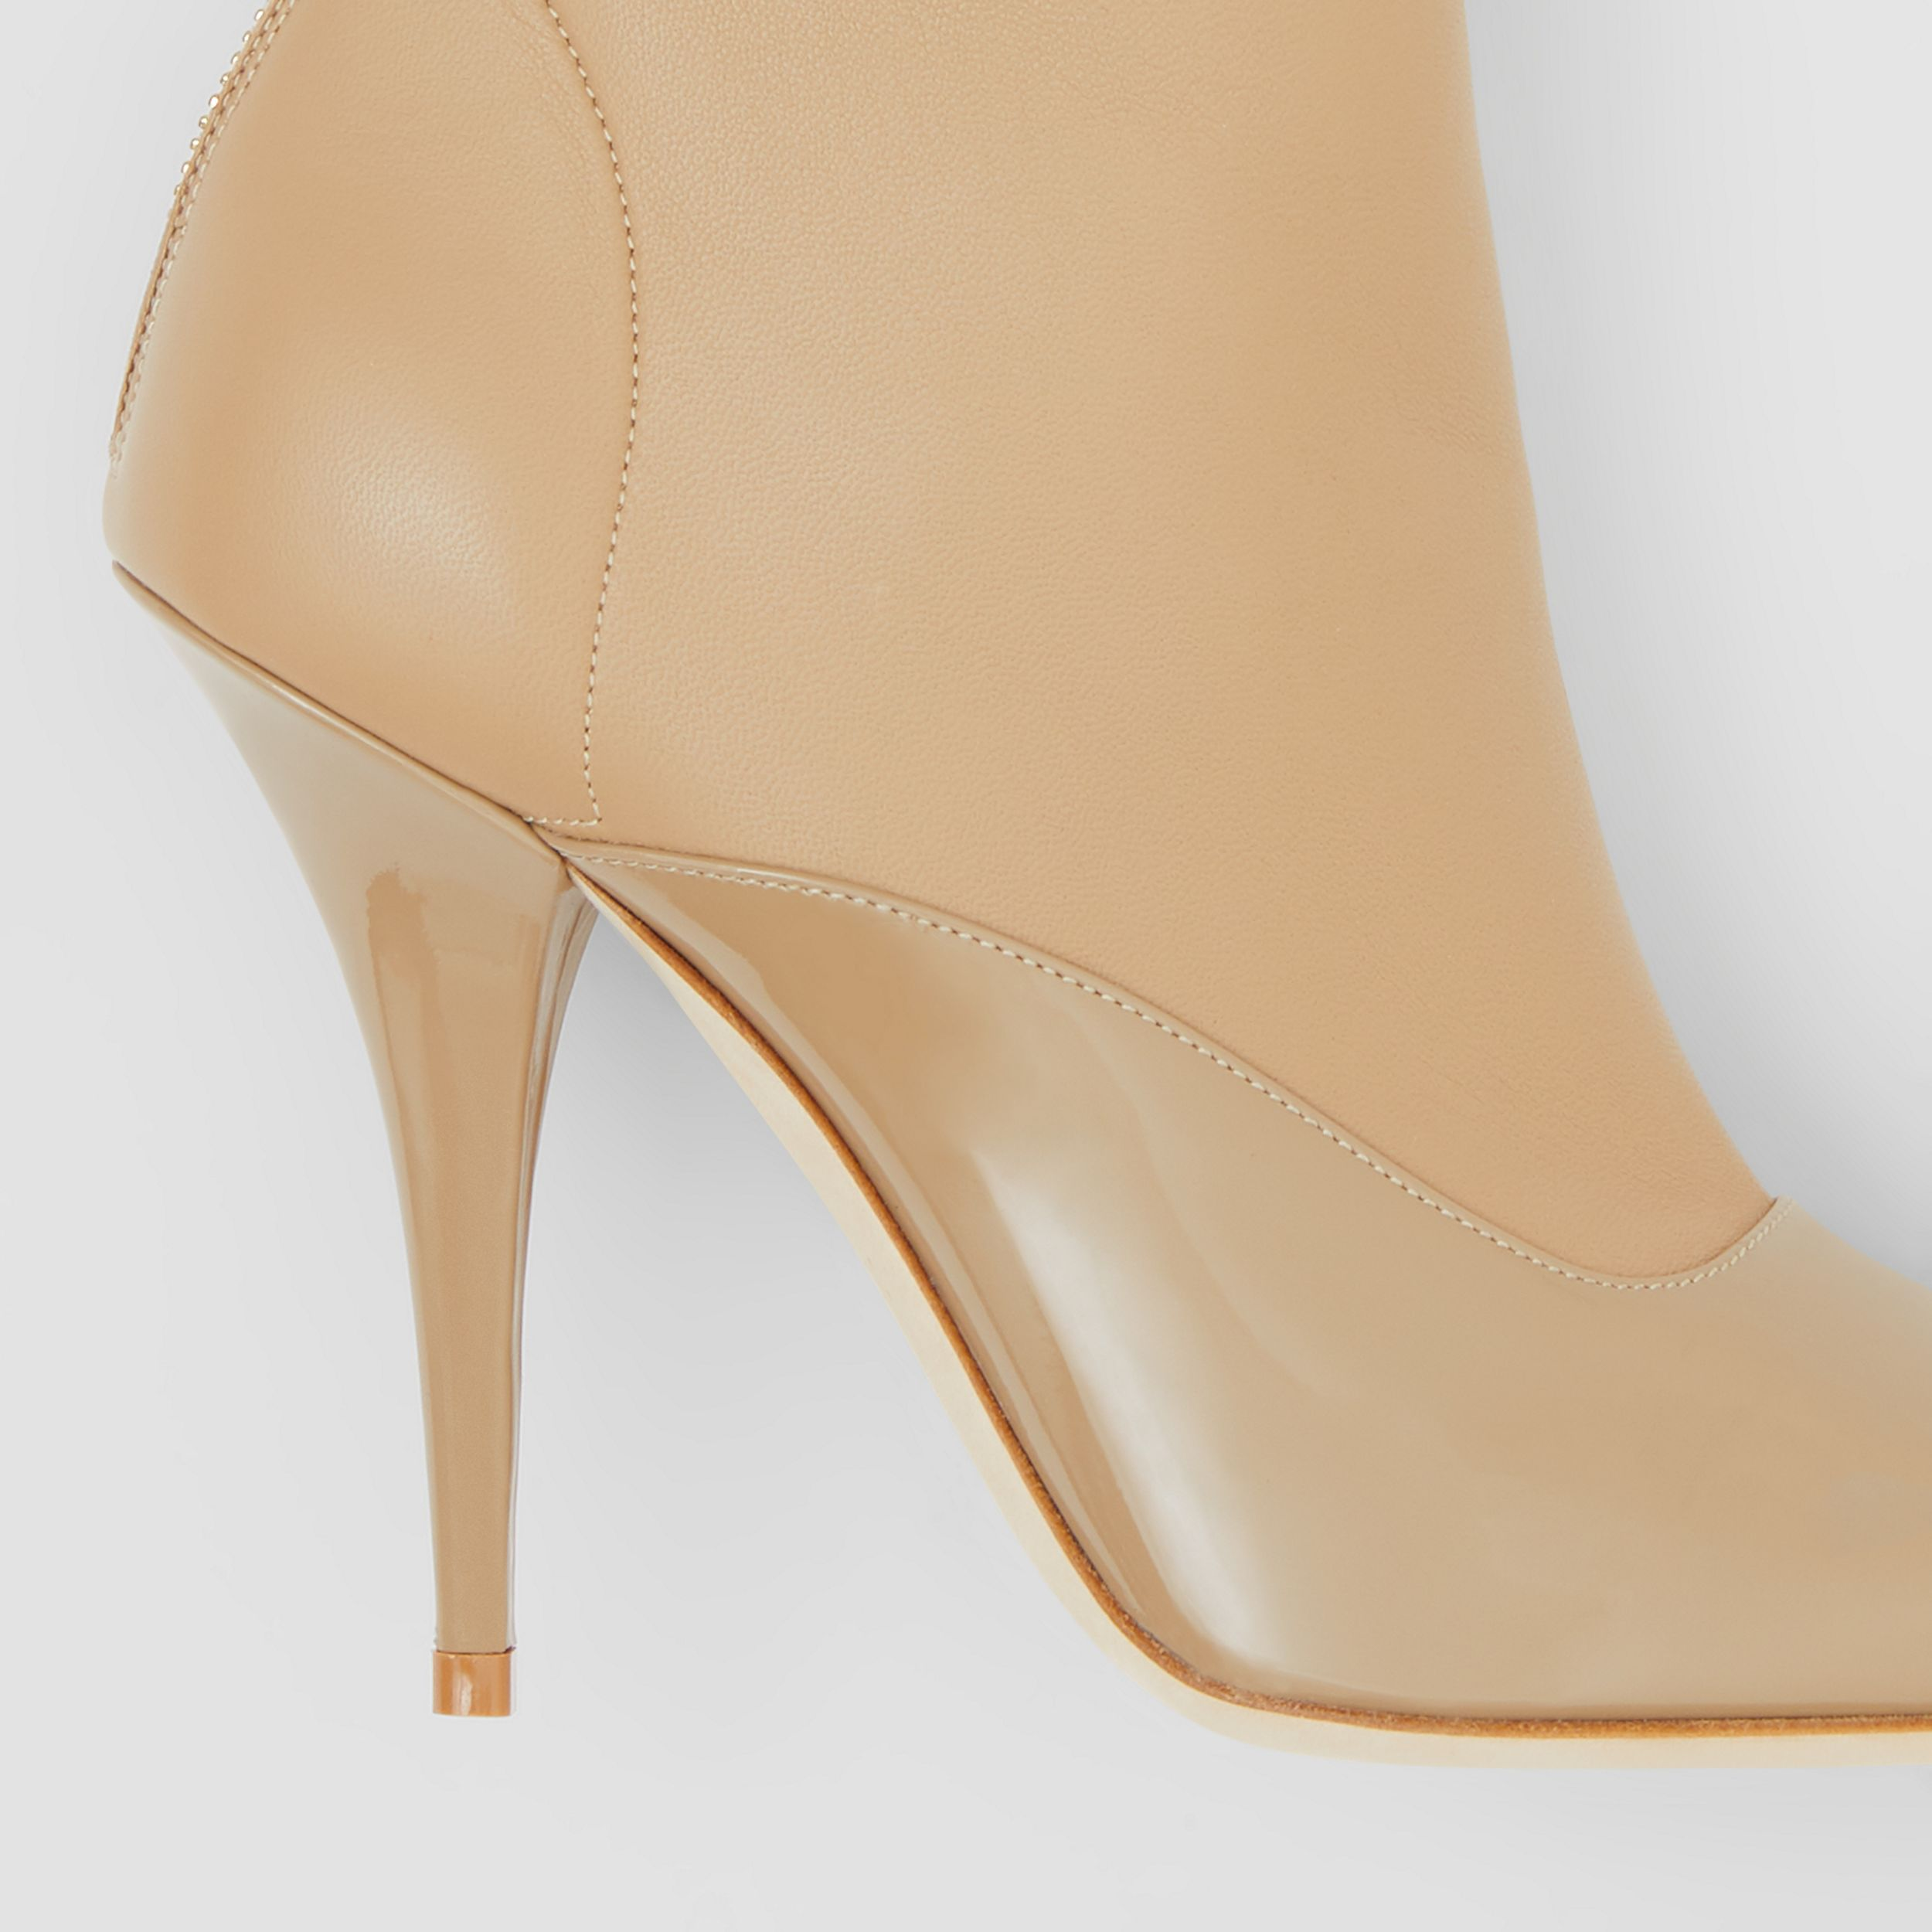 Lambskin and Patent Leather Ankle Boots in Dark Honey | Burberry - 2